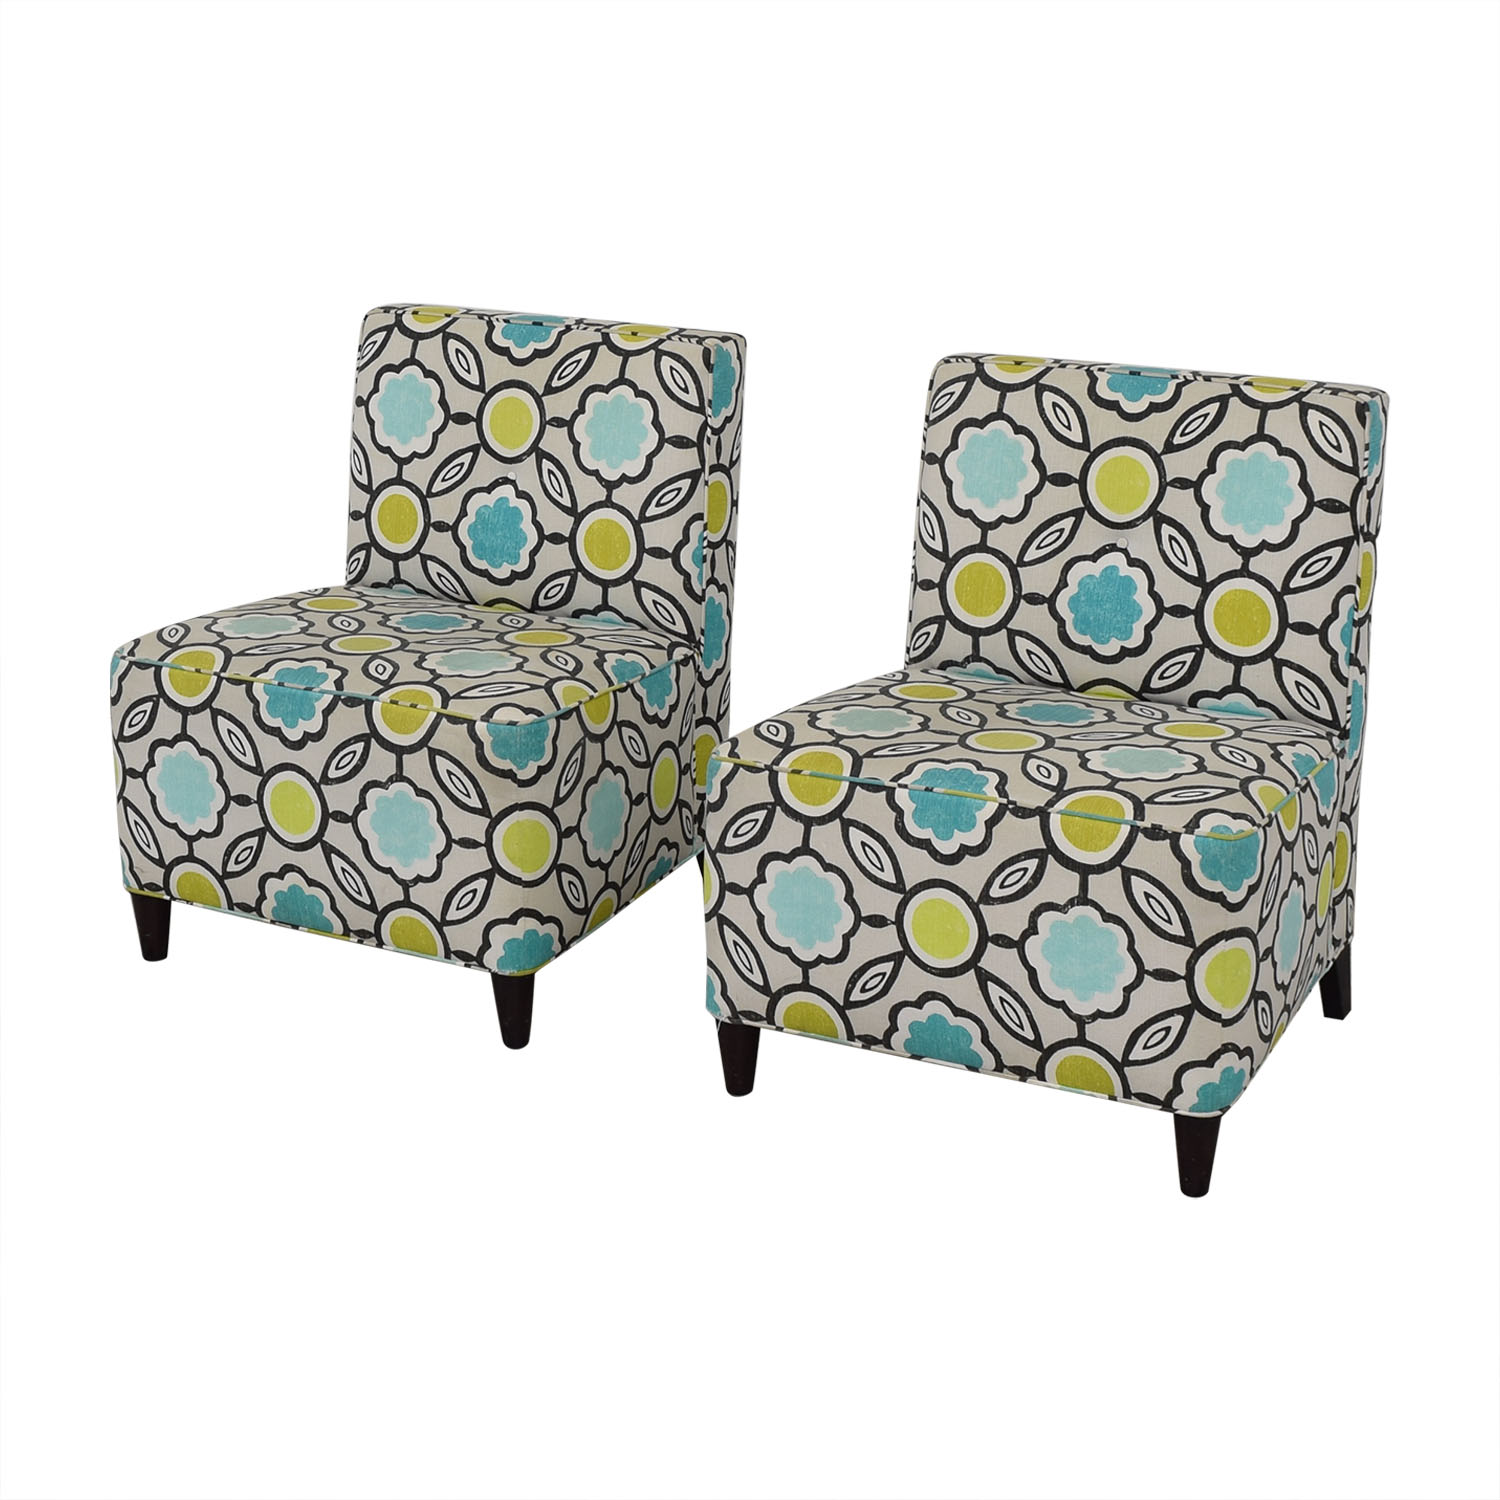 Stewart Furniture Stewart Furniture Armless Living Room Chairs coupon